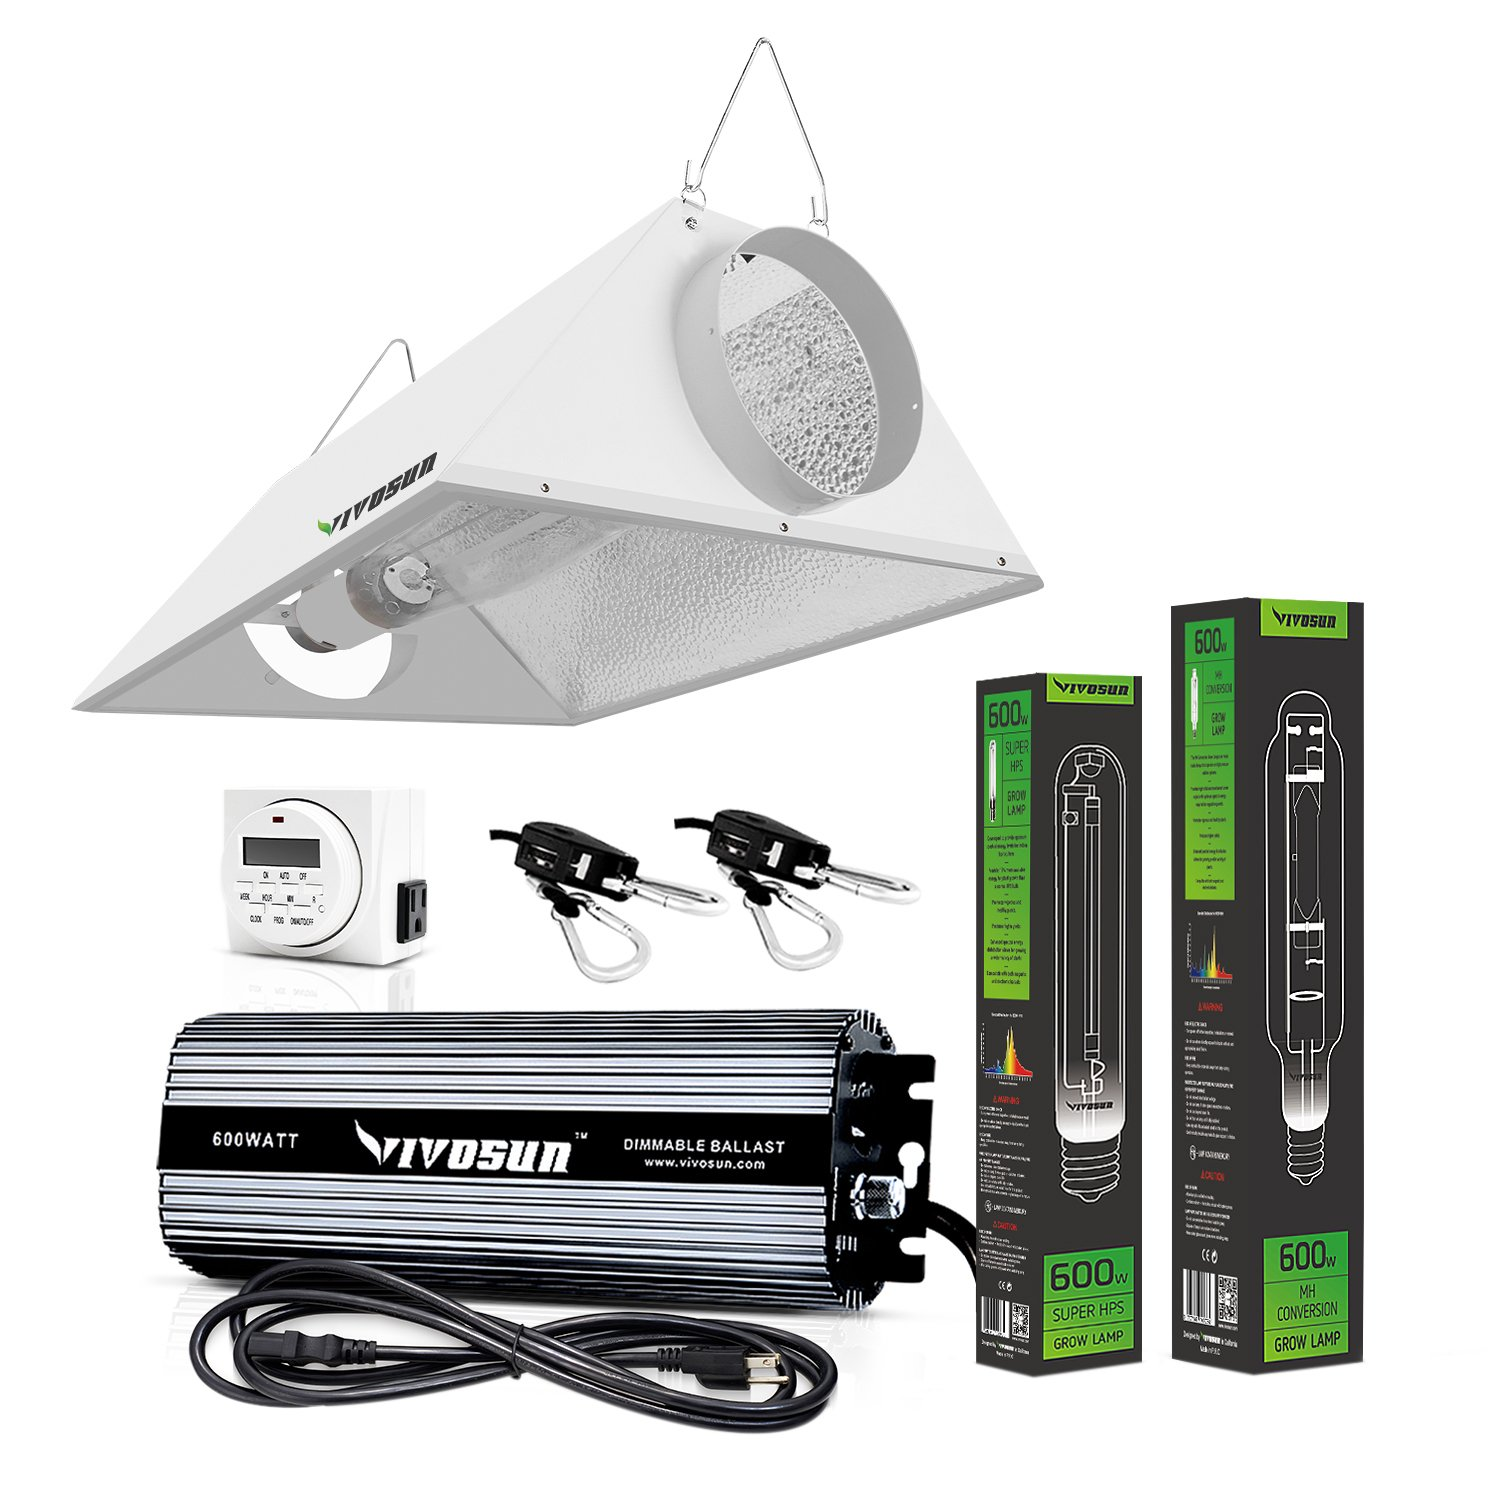 VIVOSUN Hydroponic 600 Watt HPS MH Grow Light Air Cooled Reflector Kit - Easy to set up, High Stability & Compatibility ( Enhanced Version ) by VIVOSUN